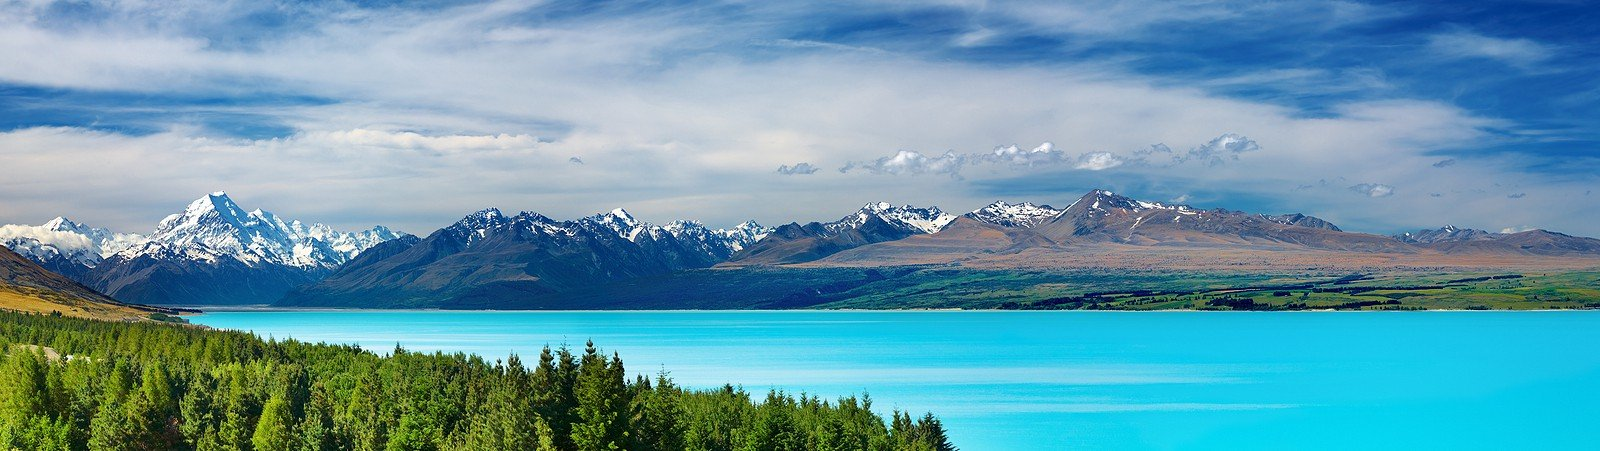 large.Aoraki-Mount-Cook-and-Pukaki-Lake-